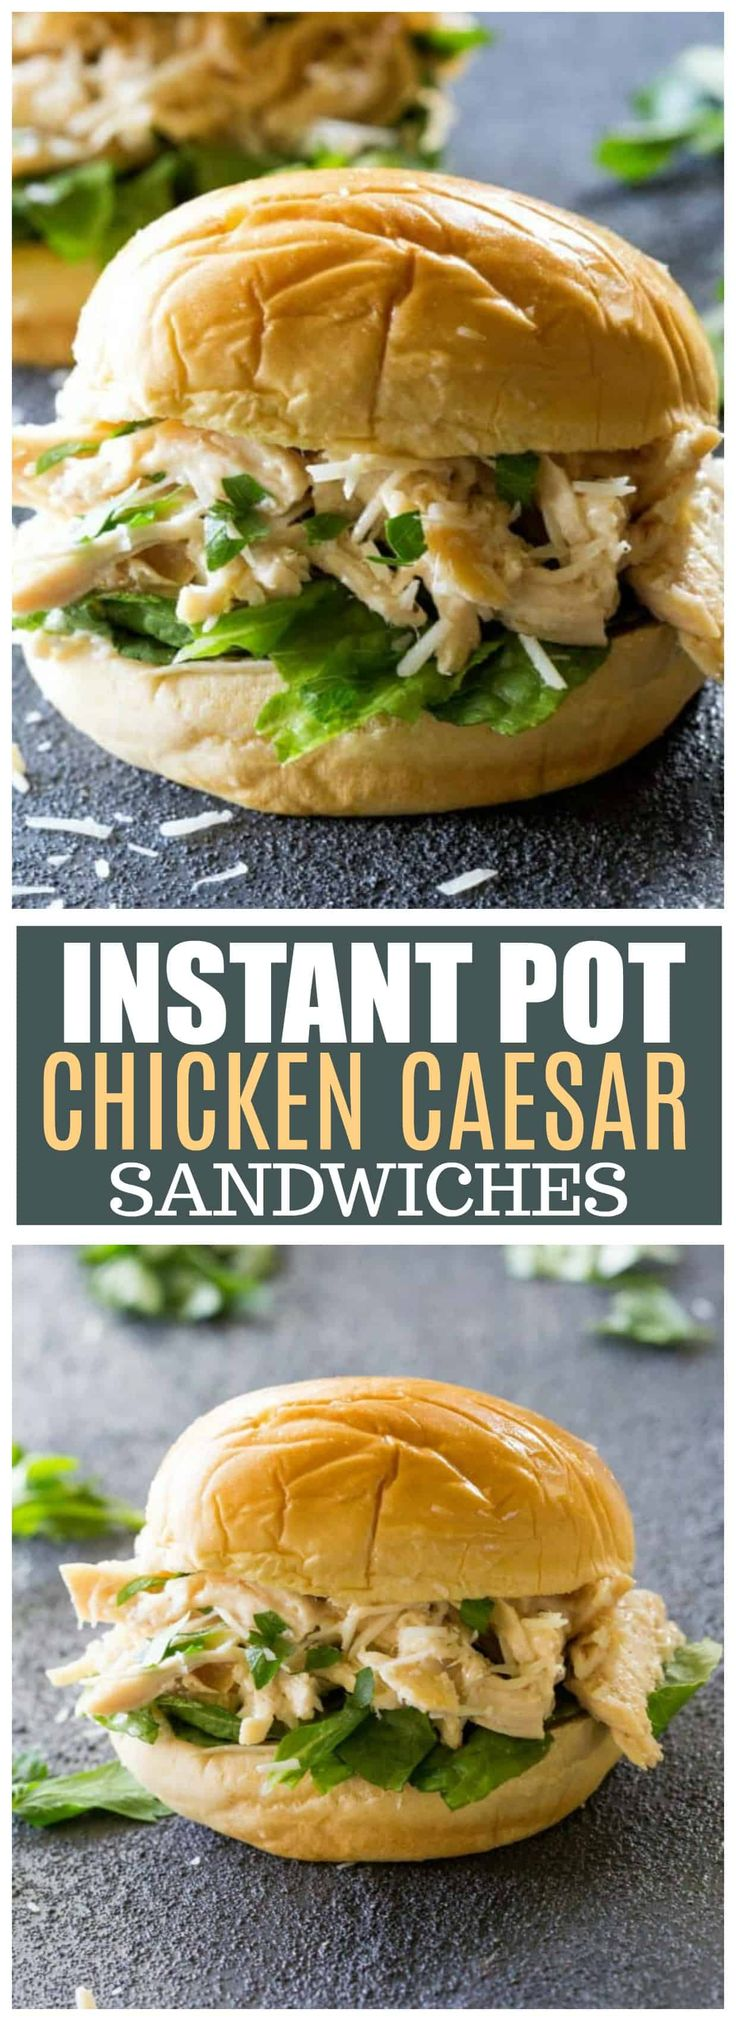 These Instant Pot Chicken Caesar Sandwiches can be made in the Instant Pot or the Slow Cooker. These are a tried and true favorite dinner. the-girl-who-ate-everything.com